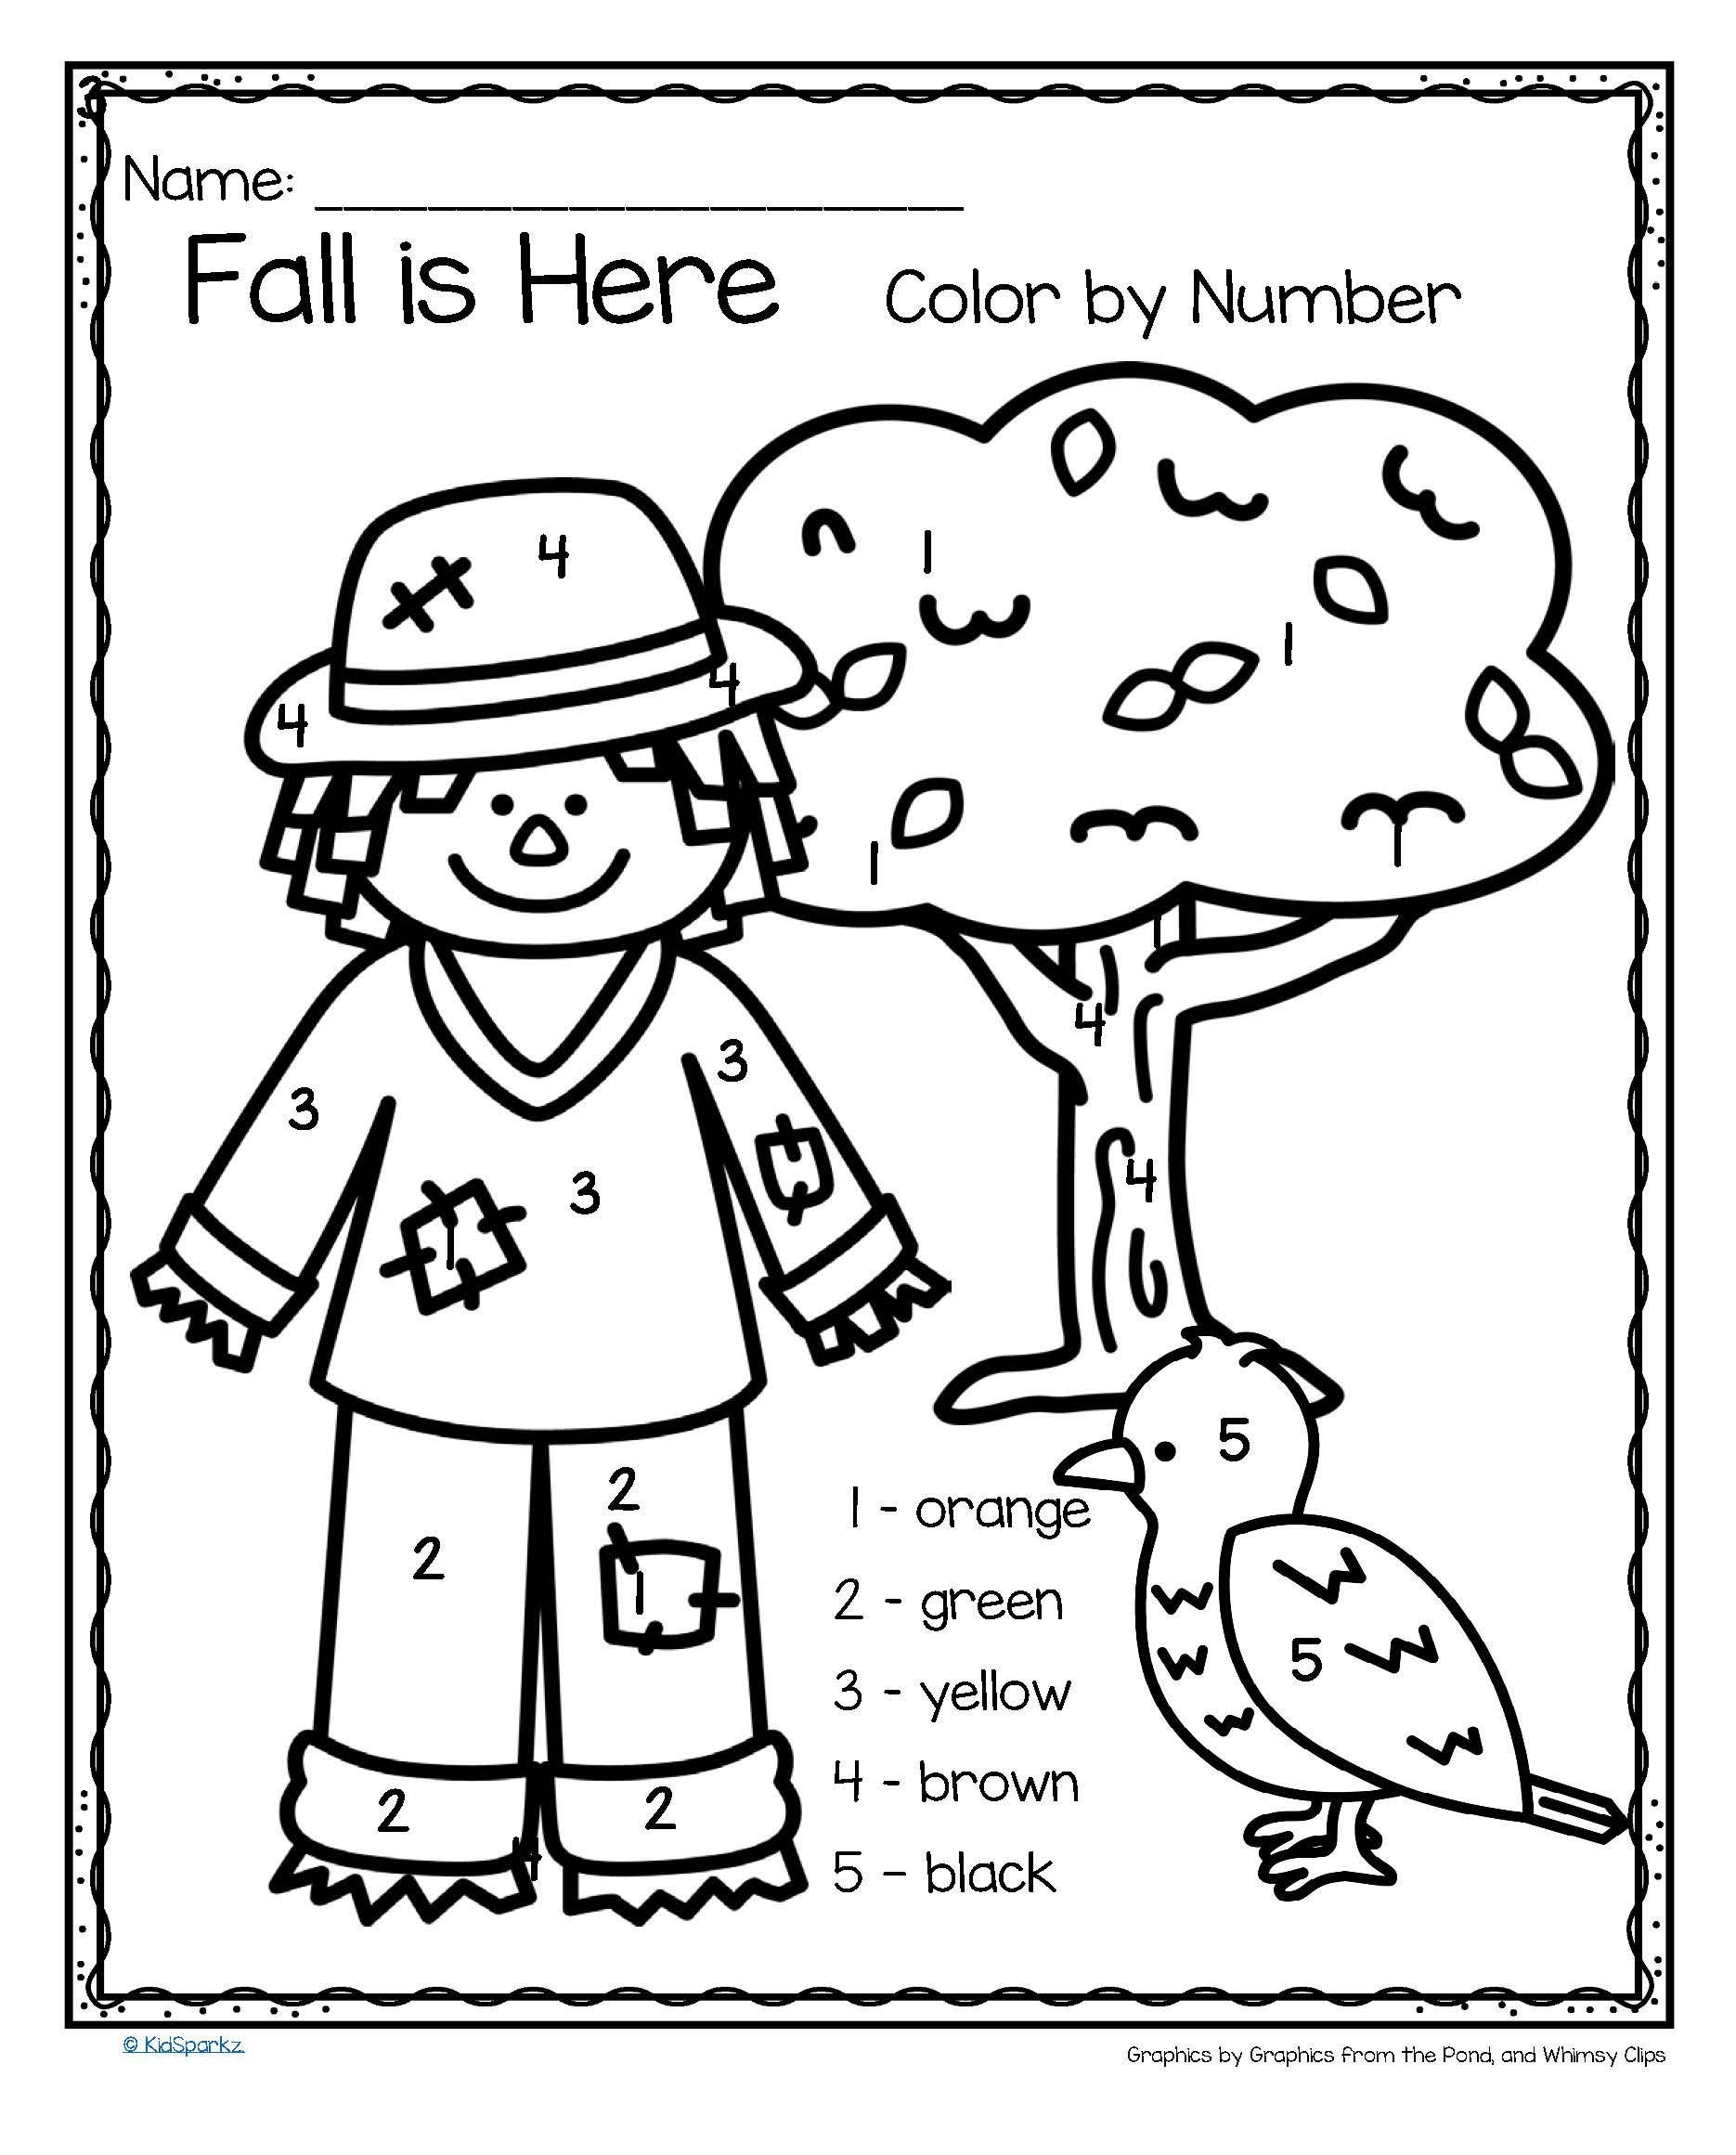 Fall Color by Number Worksheets Free 3 Fall Color by Number Printables